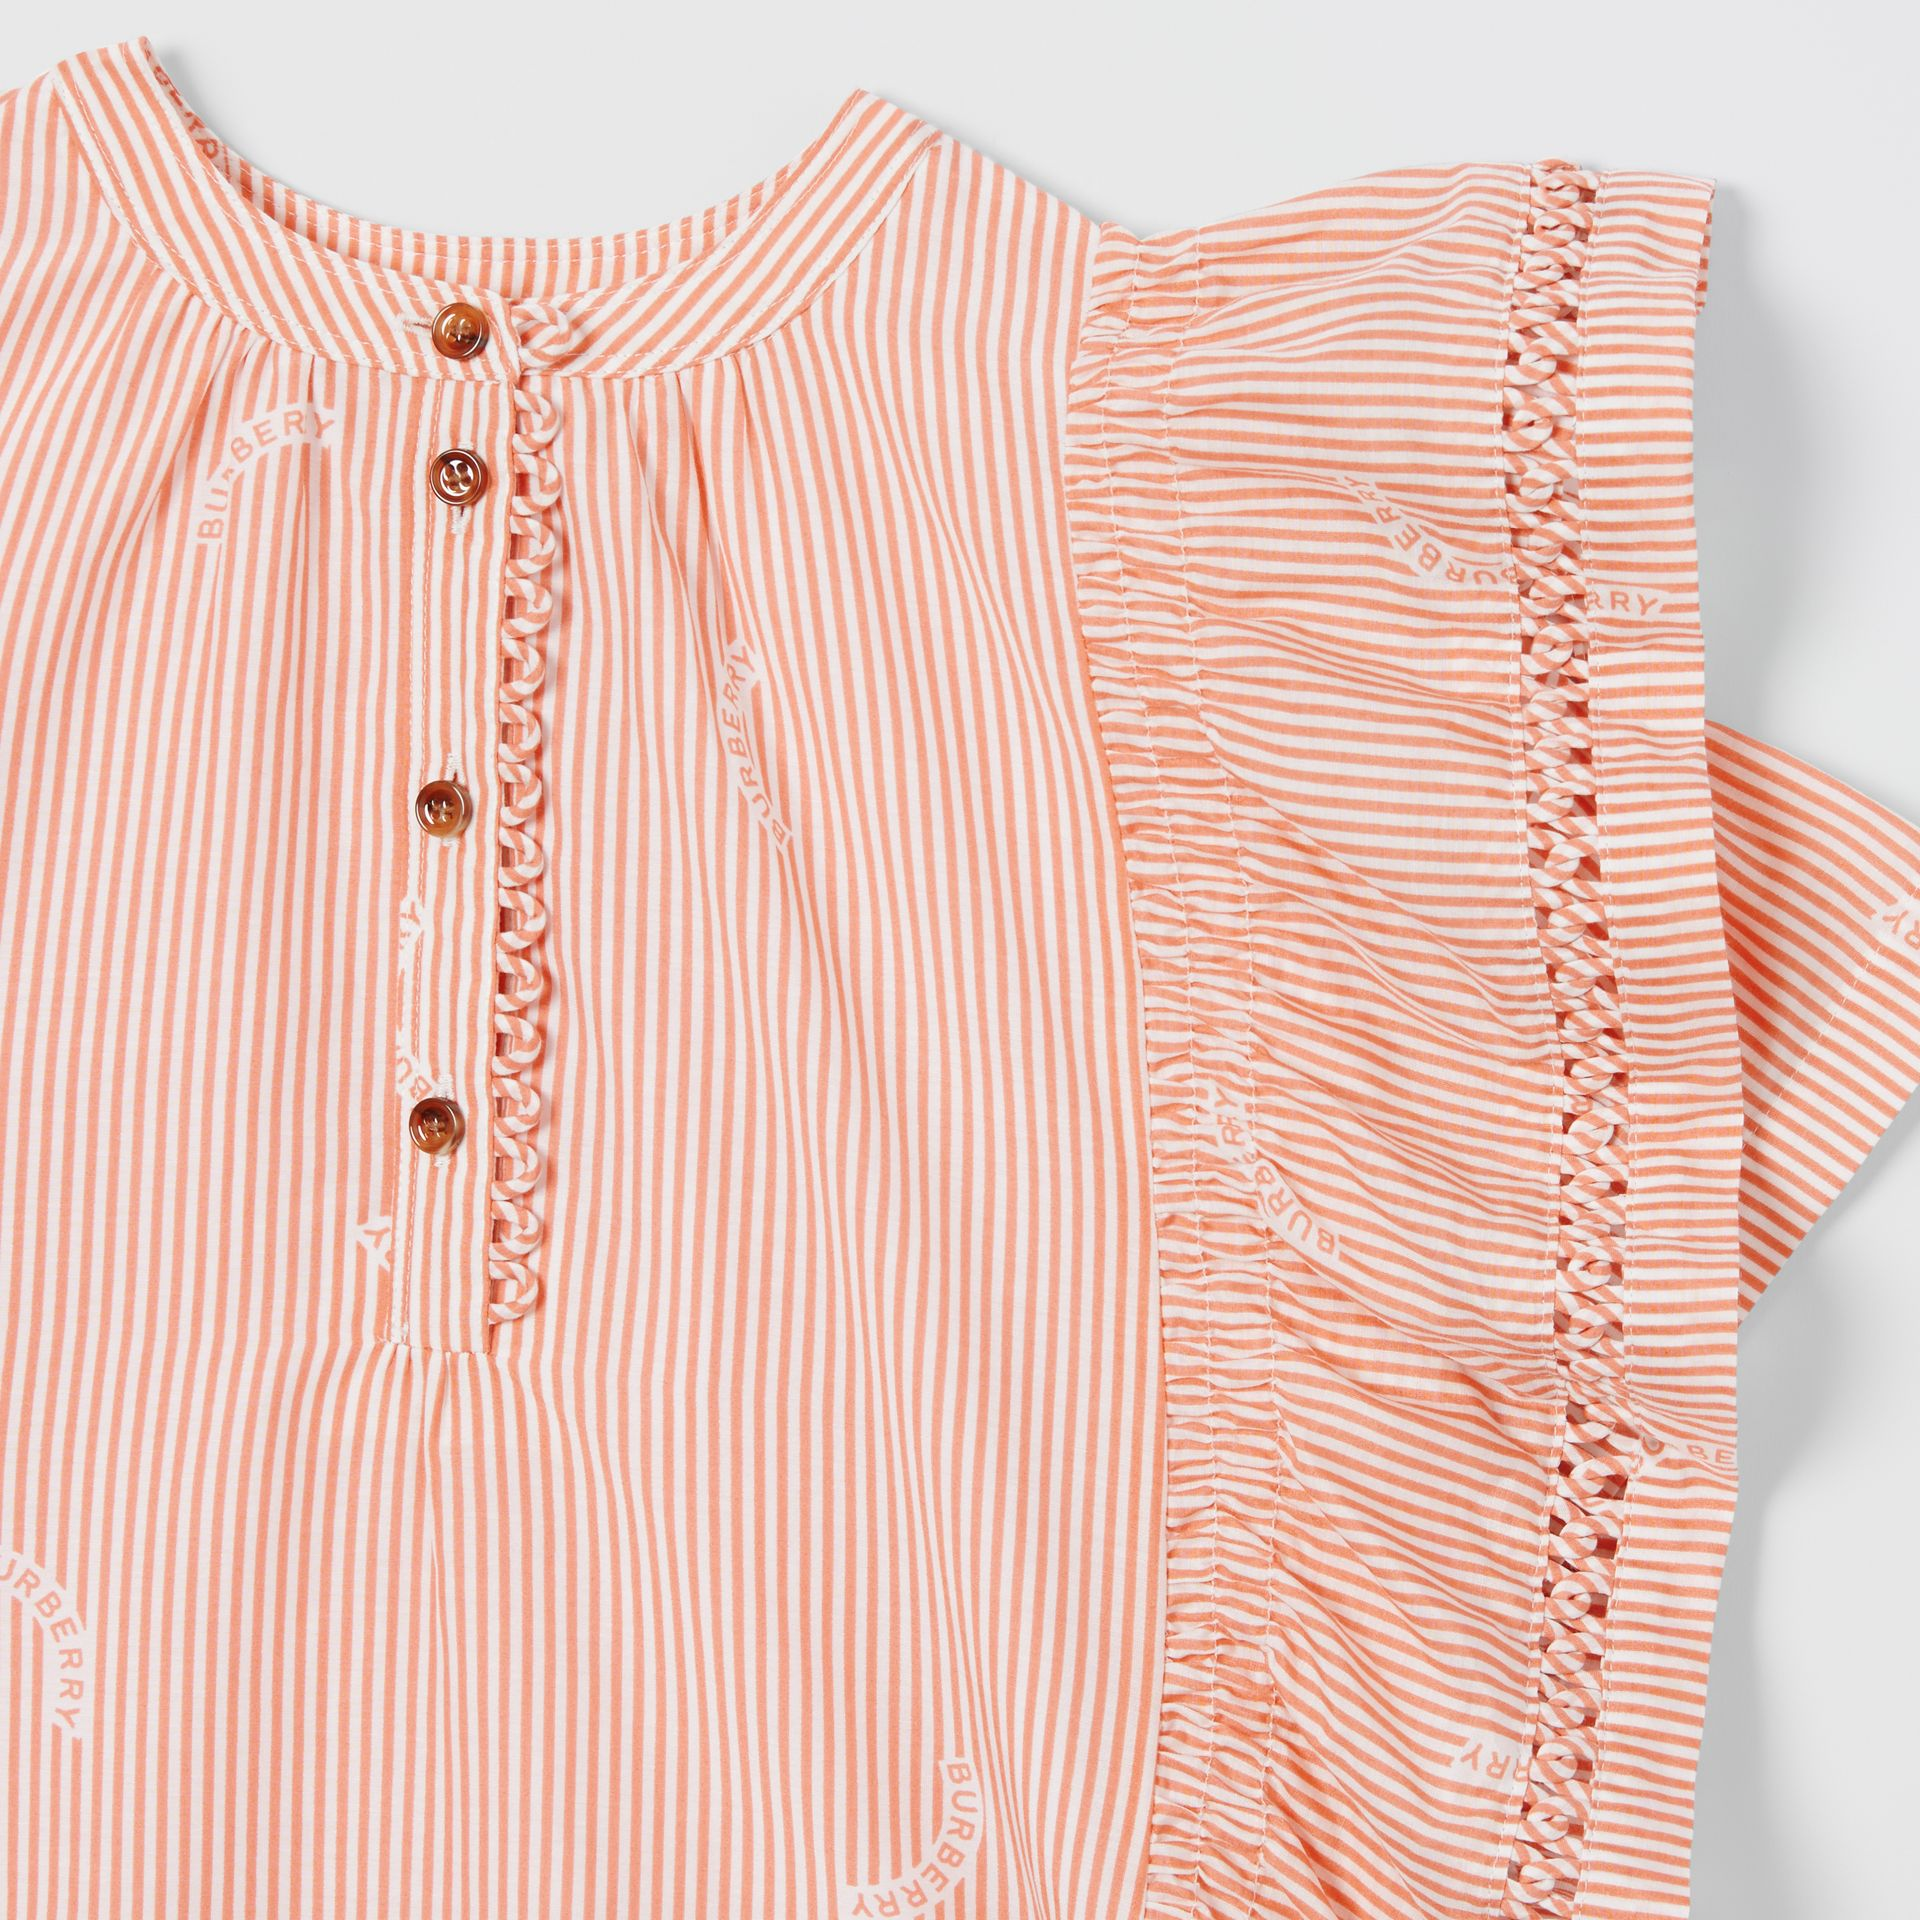 Ruffle Detail Stripe Print Cotton Silk Top in Coral Orange | Burberry - gallery image 4